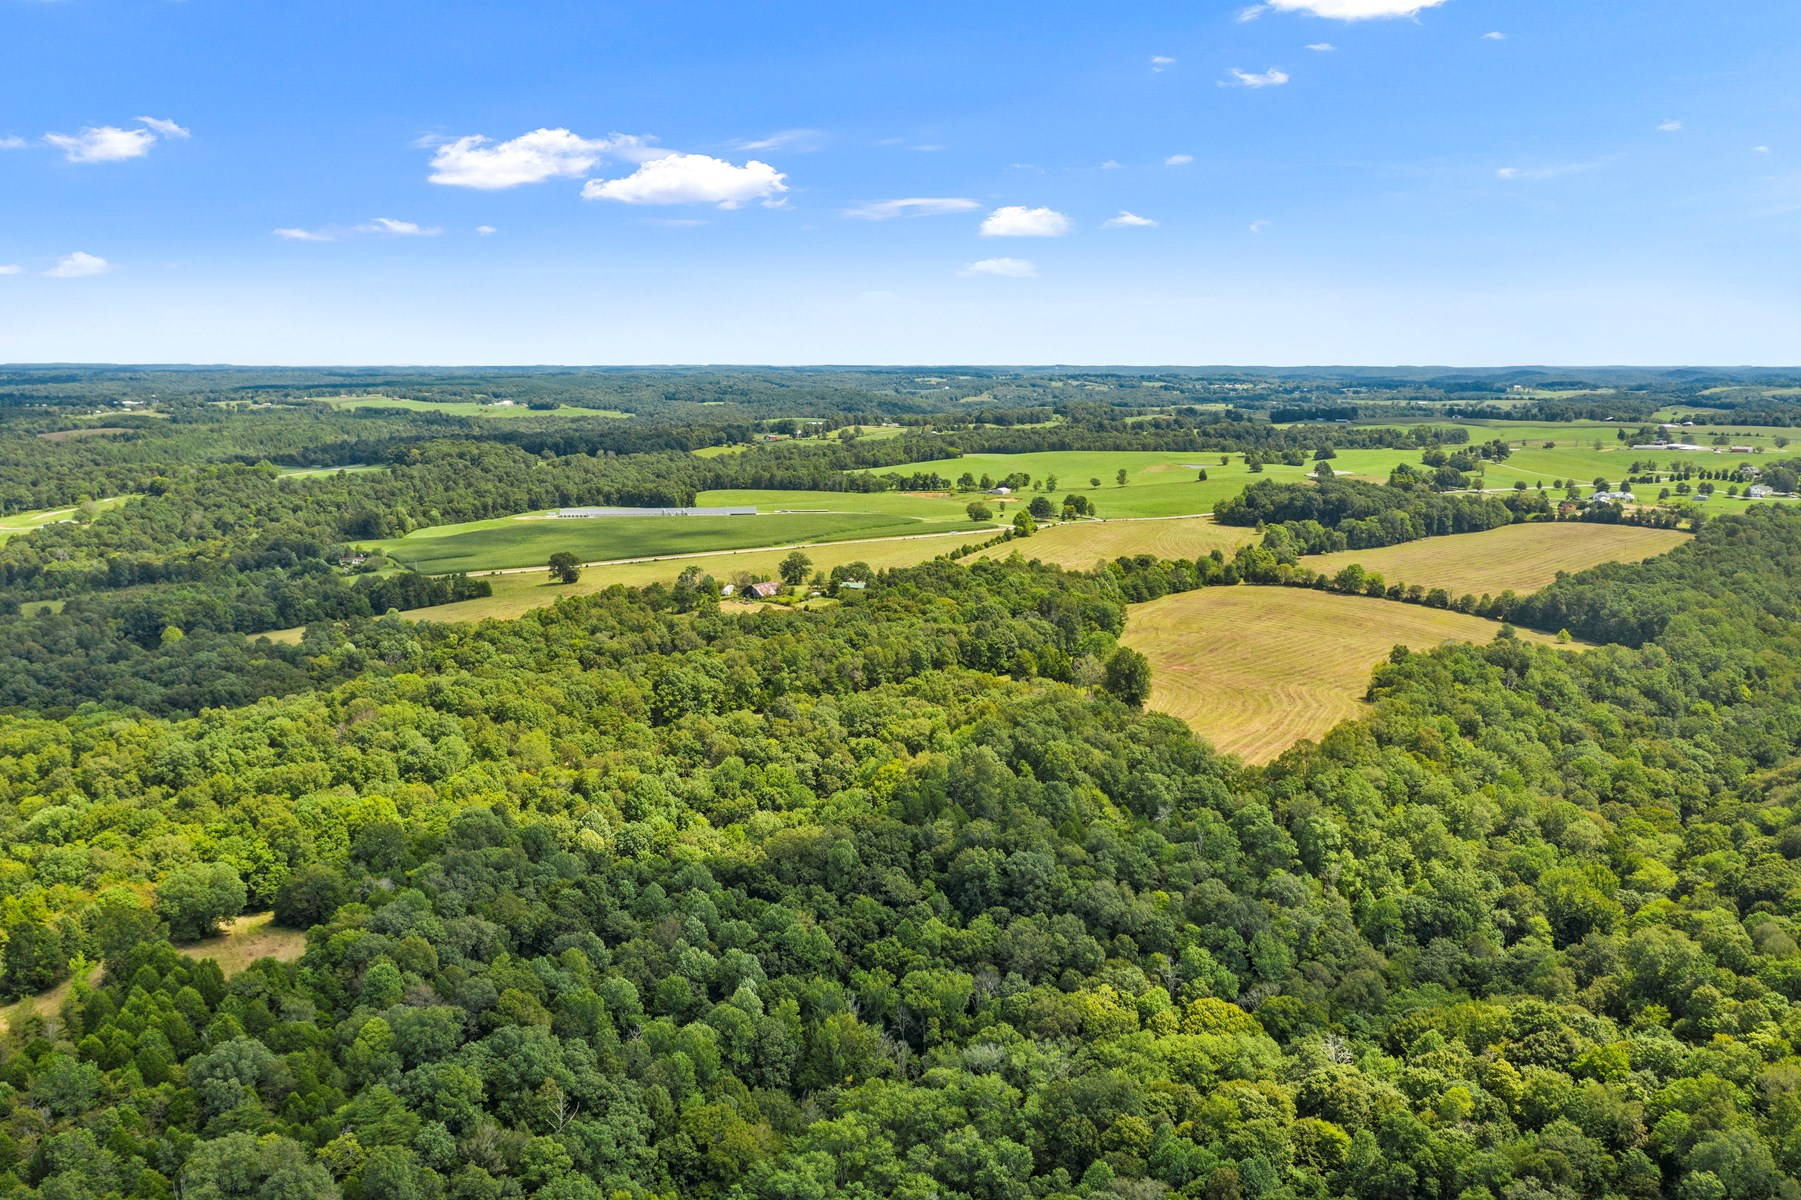 310 Acres, Timber, Hunting & Recreational, 4 Homes for Sale